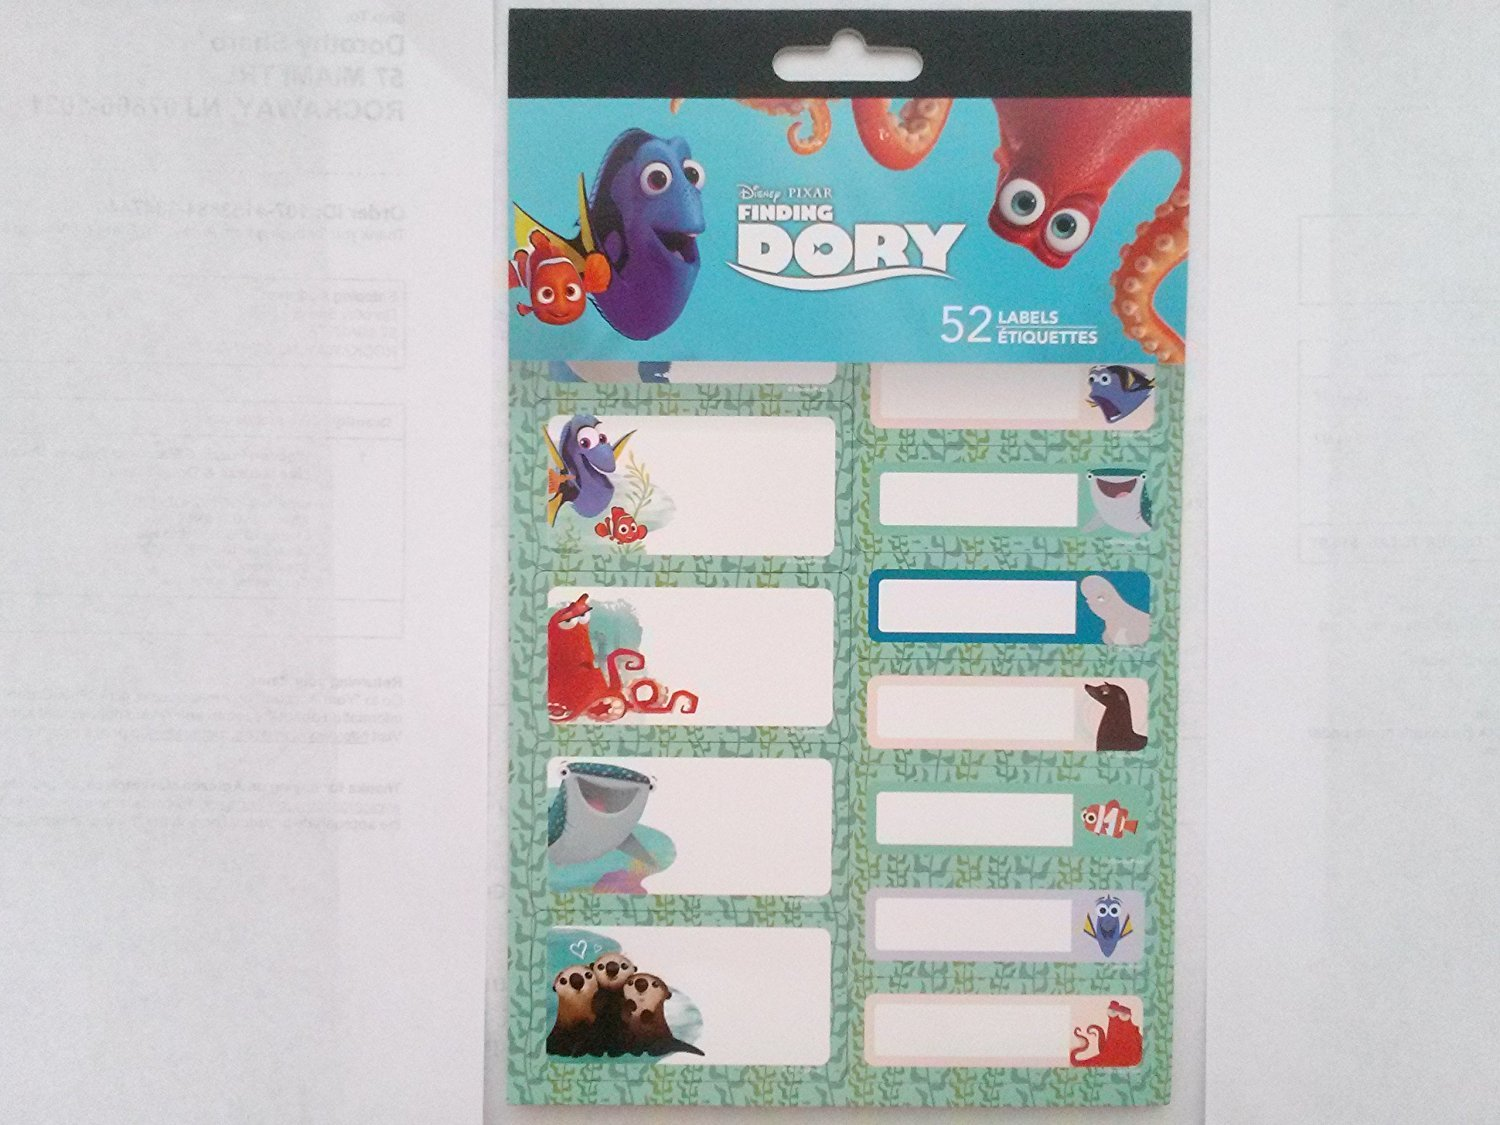 Finding Dory 52 Labels Adhesive Stickers